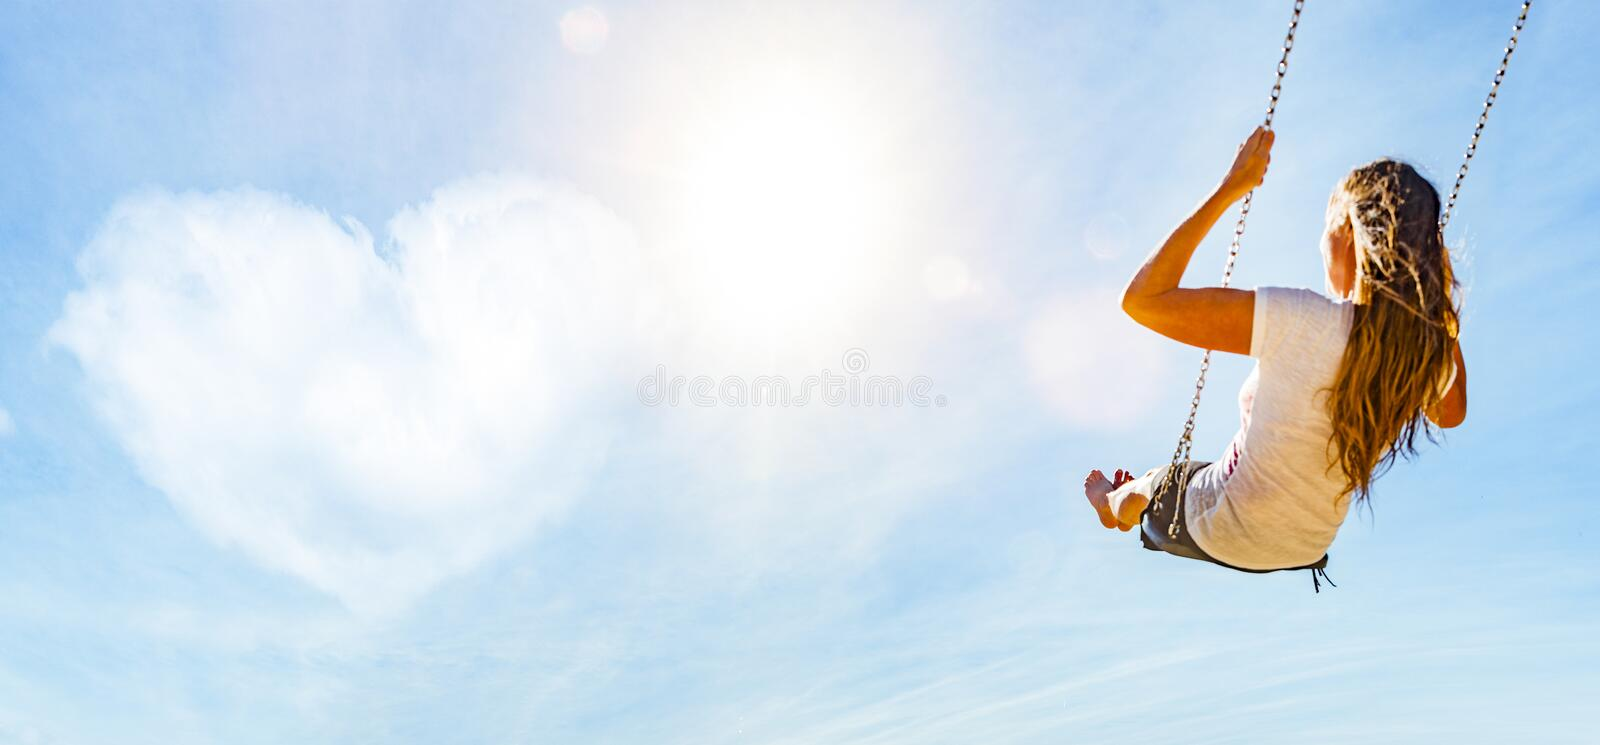 Woman on a swing with blue sky and heart-shaped cloud stock photography